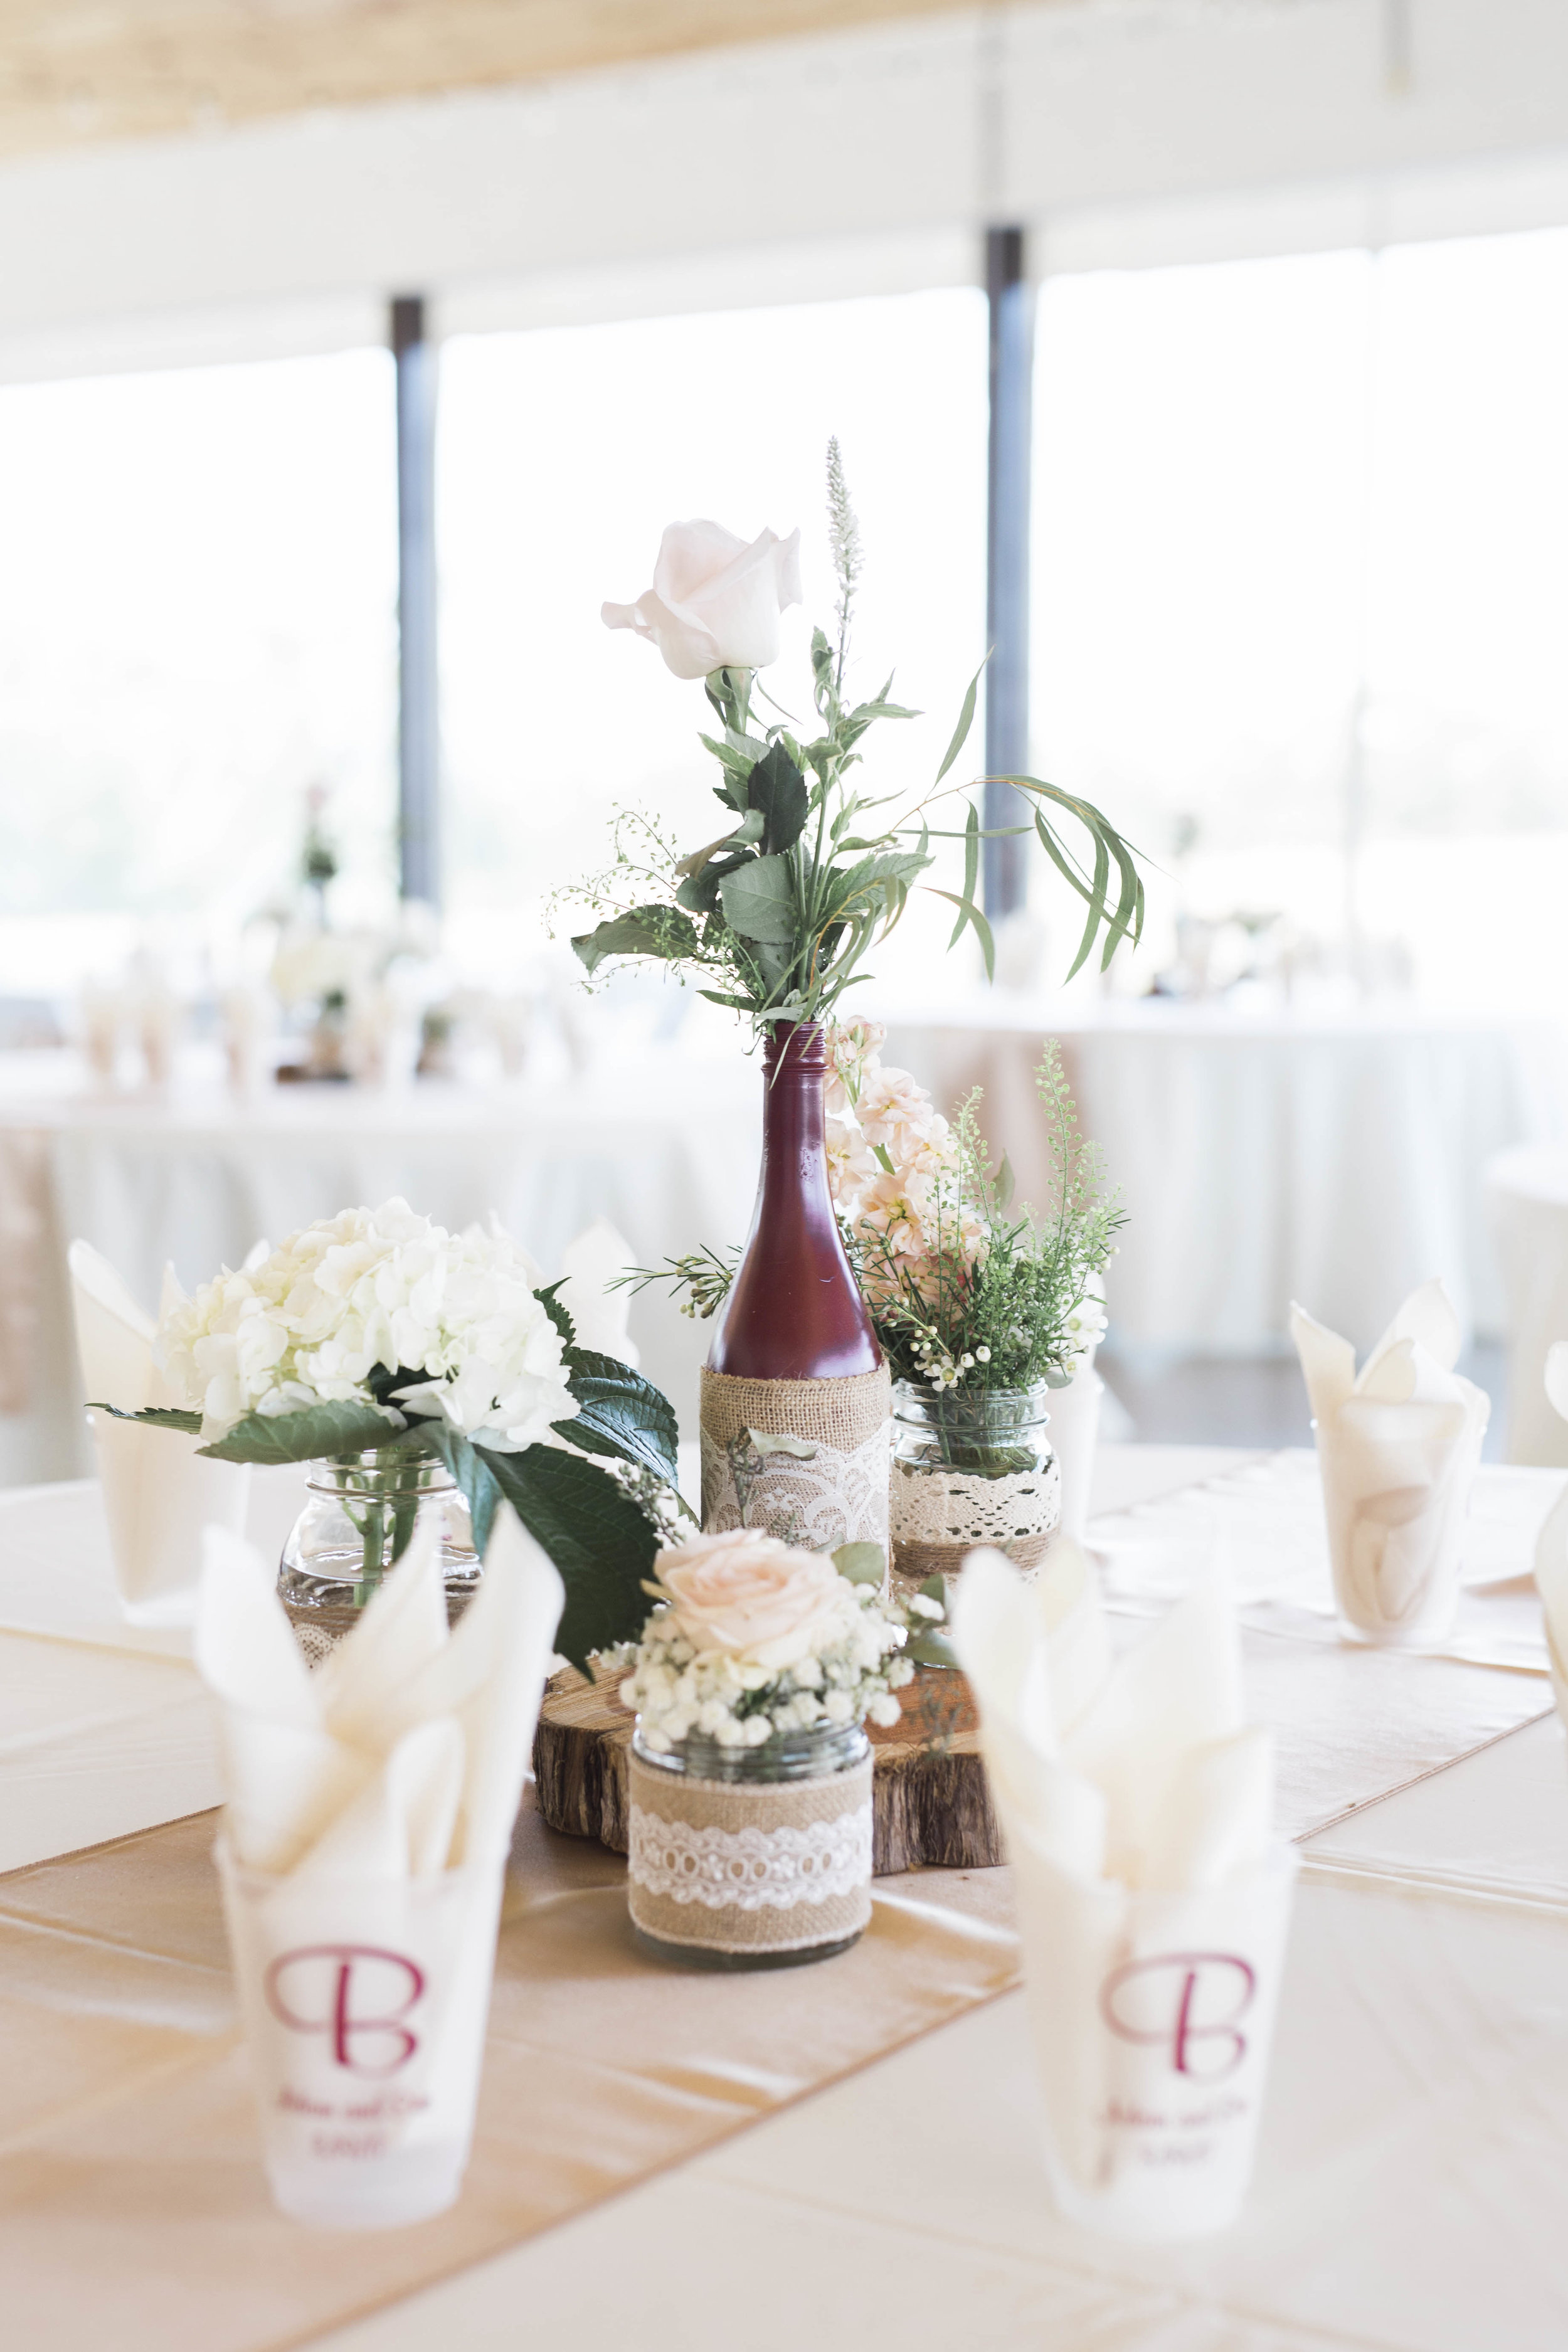 Beautiful florals and styling by Judy Pour at The Pour Vineyard!